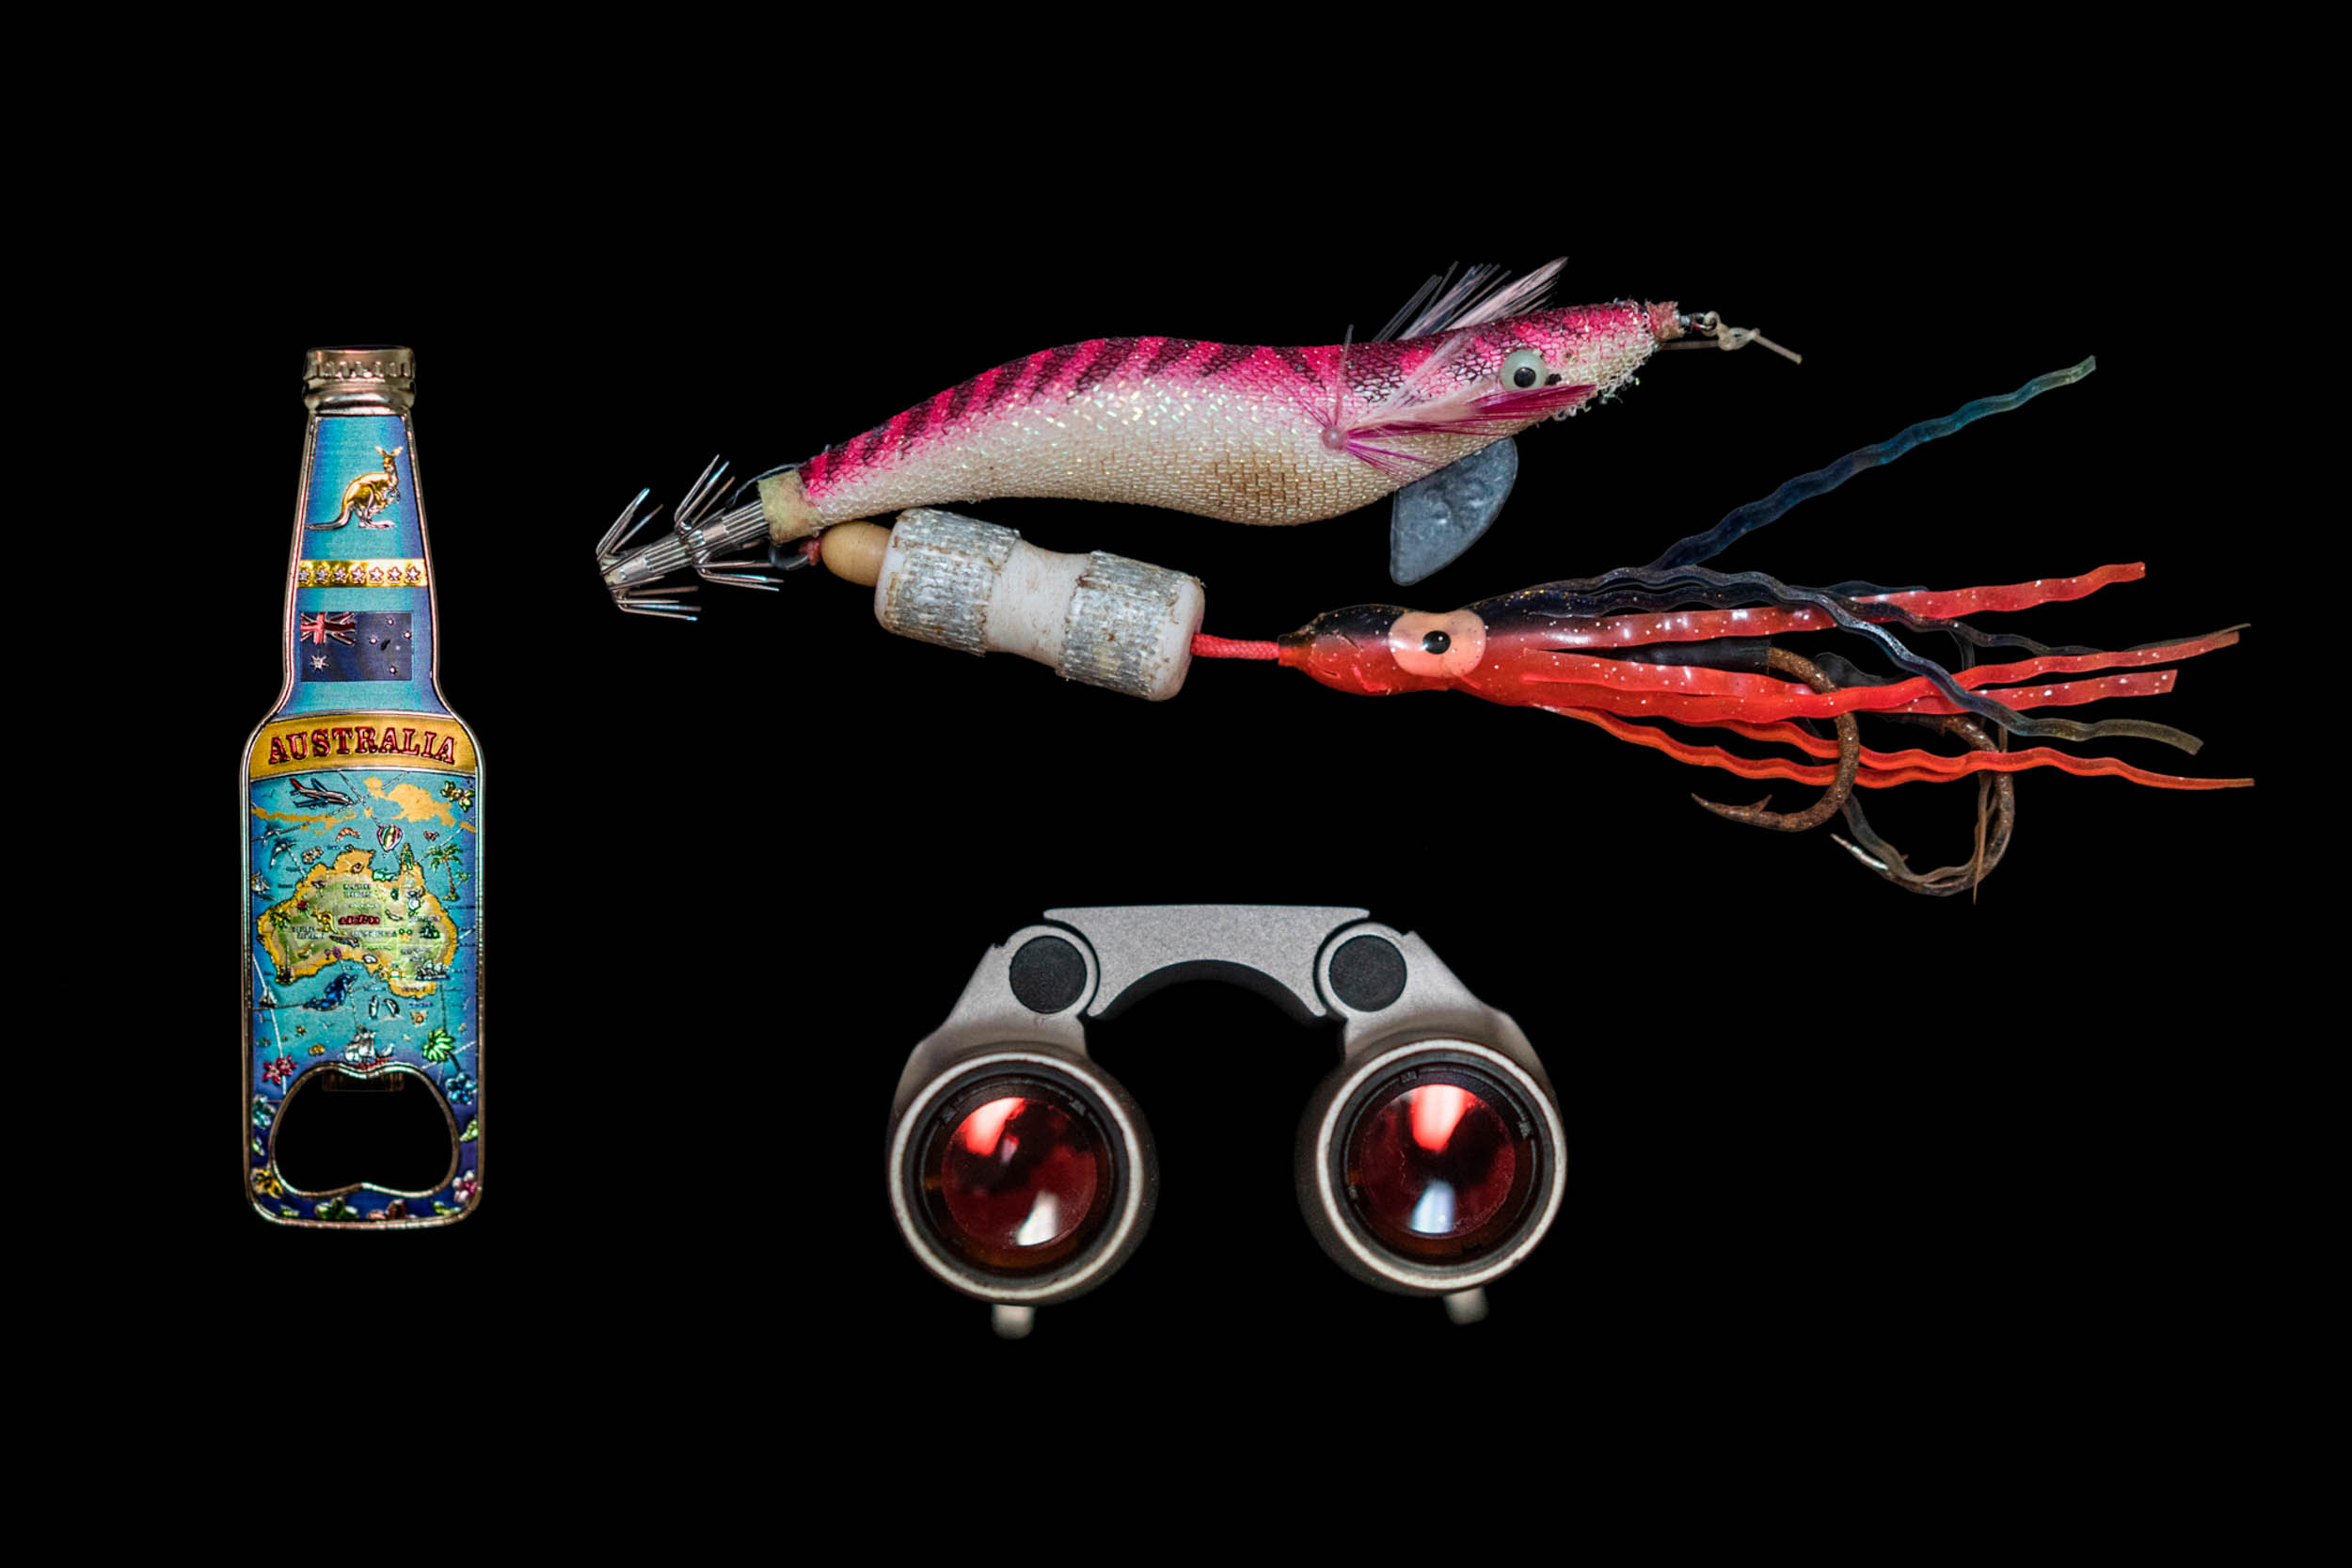 A bottle opener, a fishing lure, and a pair of binoculars. Seafarers entertain themselves fishing or simply